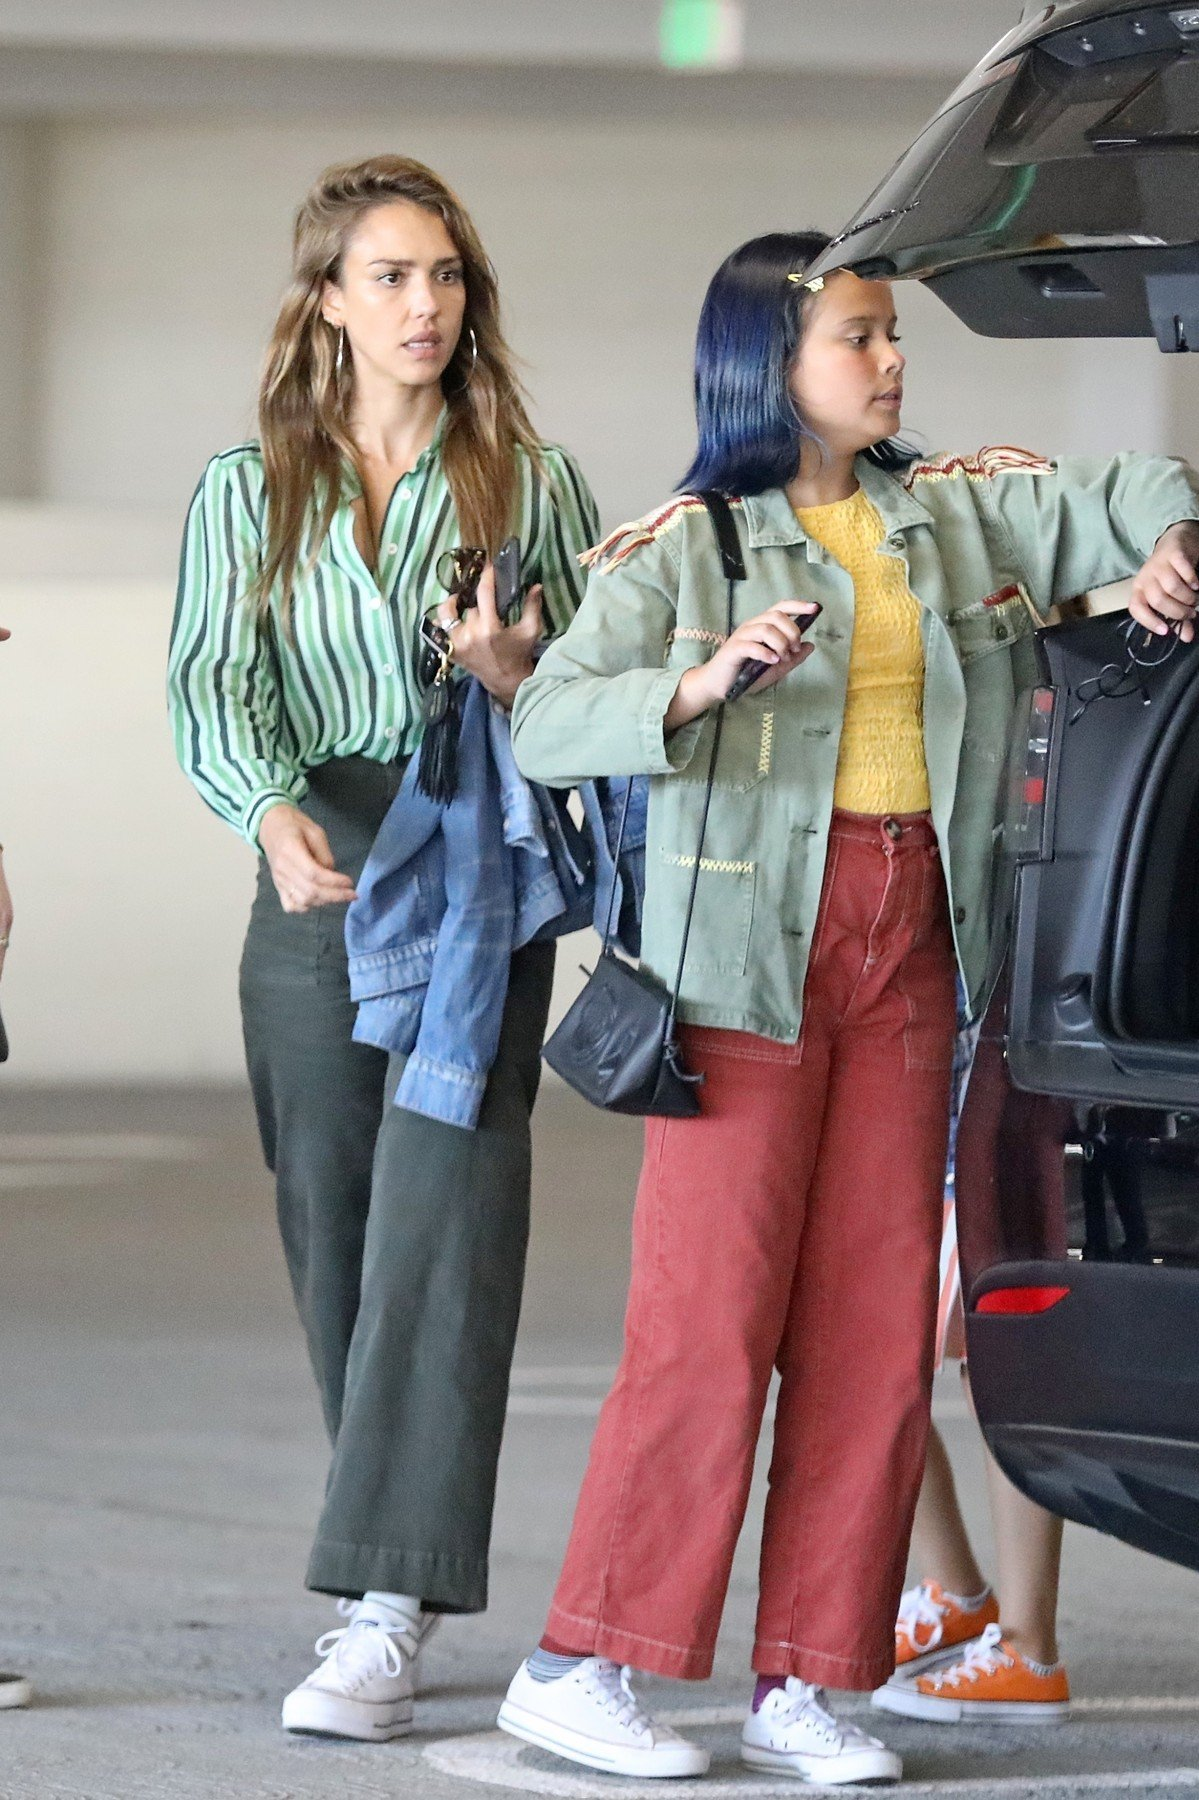 Century City, CA  - *EXCLUSIVE*  - Jessica Alba takes her kids to the Century City shopping center. The actress and entrepreneur pushed her youngest, son Hayes, in his stroller while daughters Honor Marie and Haven Garner walked along beside her. Alba could be seen giving Honor a kiss on her forehead as the group set out on their shopping day. *Shot on 08/13/19*  *UK Clients - Pictures Containing Children Please Pixelate Face Prior To Publication*, Image: 465283677, License: Rights-managed, Restrictions: , Model Release: no, Credit line: Profimedia, Backgrid USA